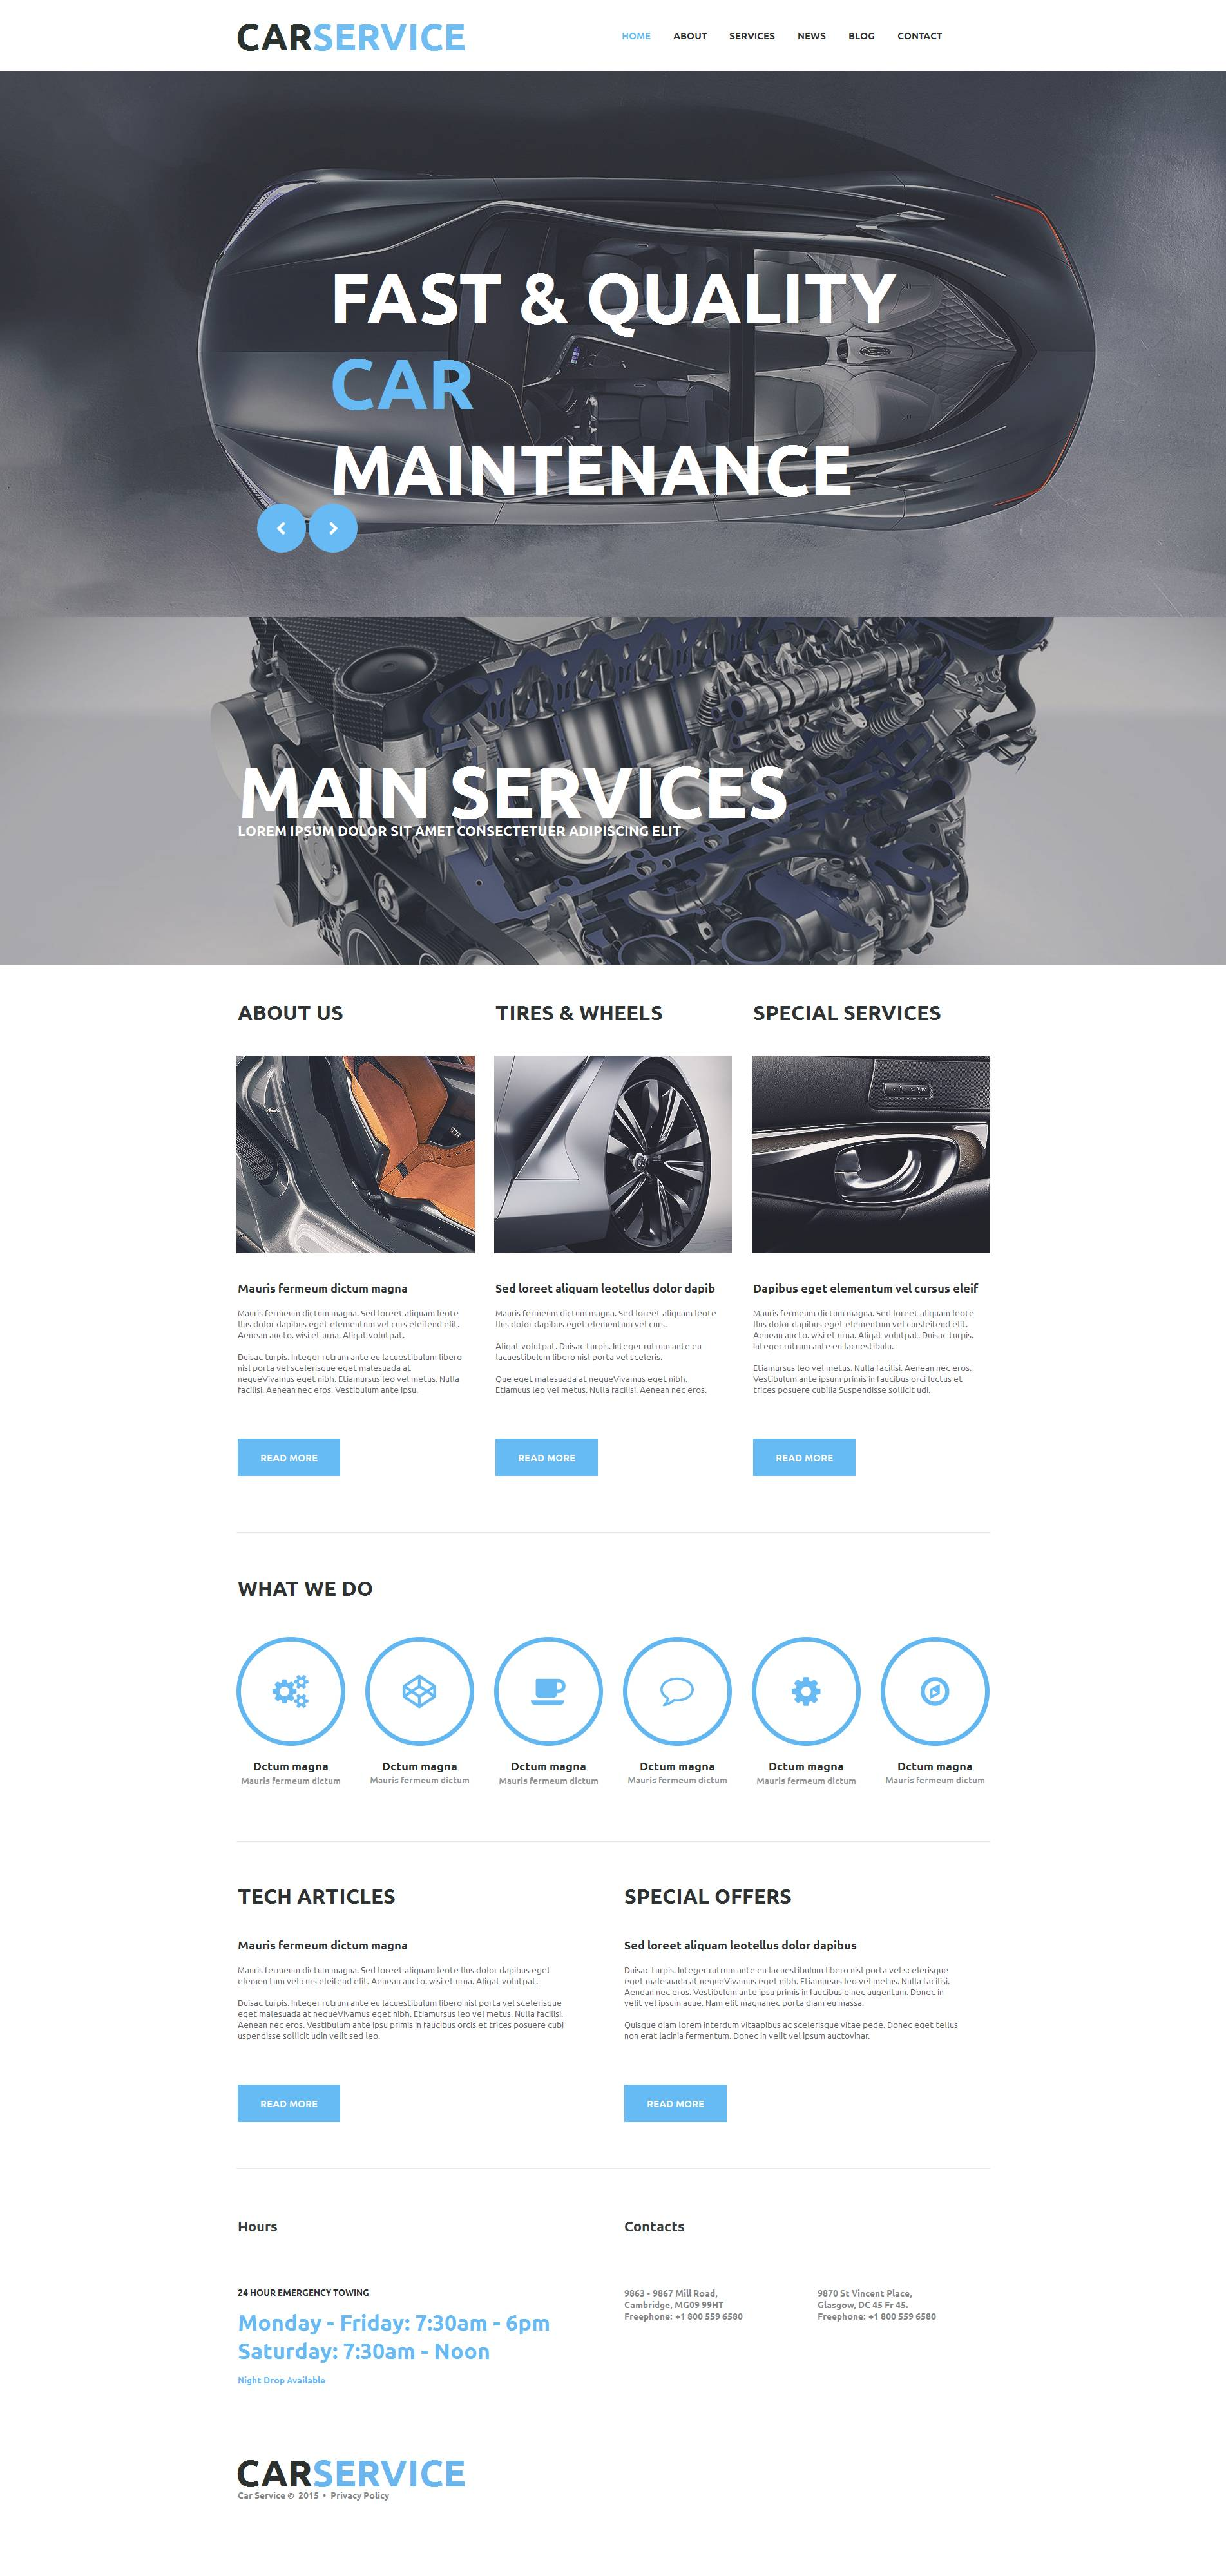 The Car Repair Moto CMS HTML Design 53619, one of the best Moto CMS HTML templates of its kind (cars), also known as car repair Moto CMS HTML template, recovery Moto CMS HTML template, repairs Moto CMS HTML template, automobile Moto CMS HTML template, auto repair Moto CMS HTML template, maintenance Moto CMS HTML template, service care Moto CMS HTML template, advice Moto CMS HTML template, station and related with car repair, recovery, repairs, automobile, auto repair, maintenance, service care, advice, station, etc.